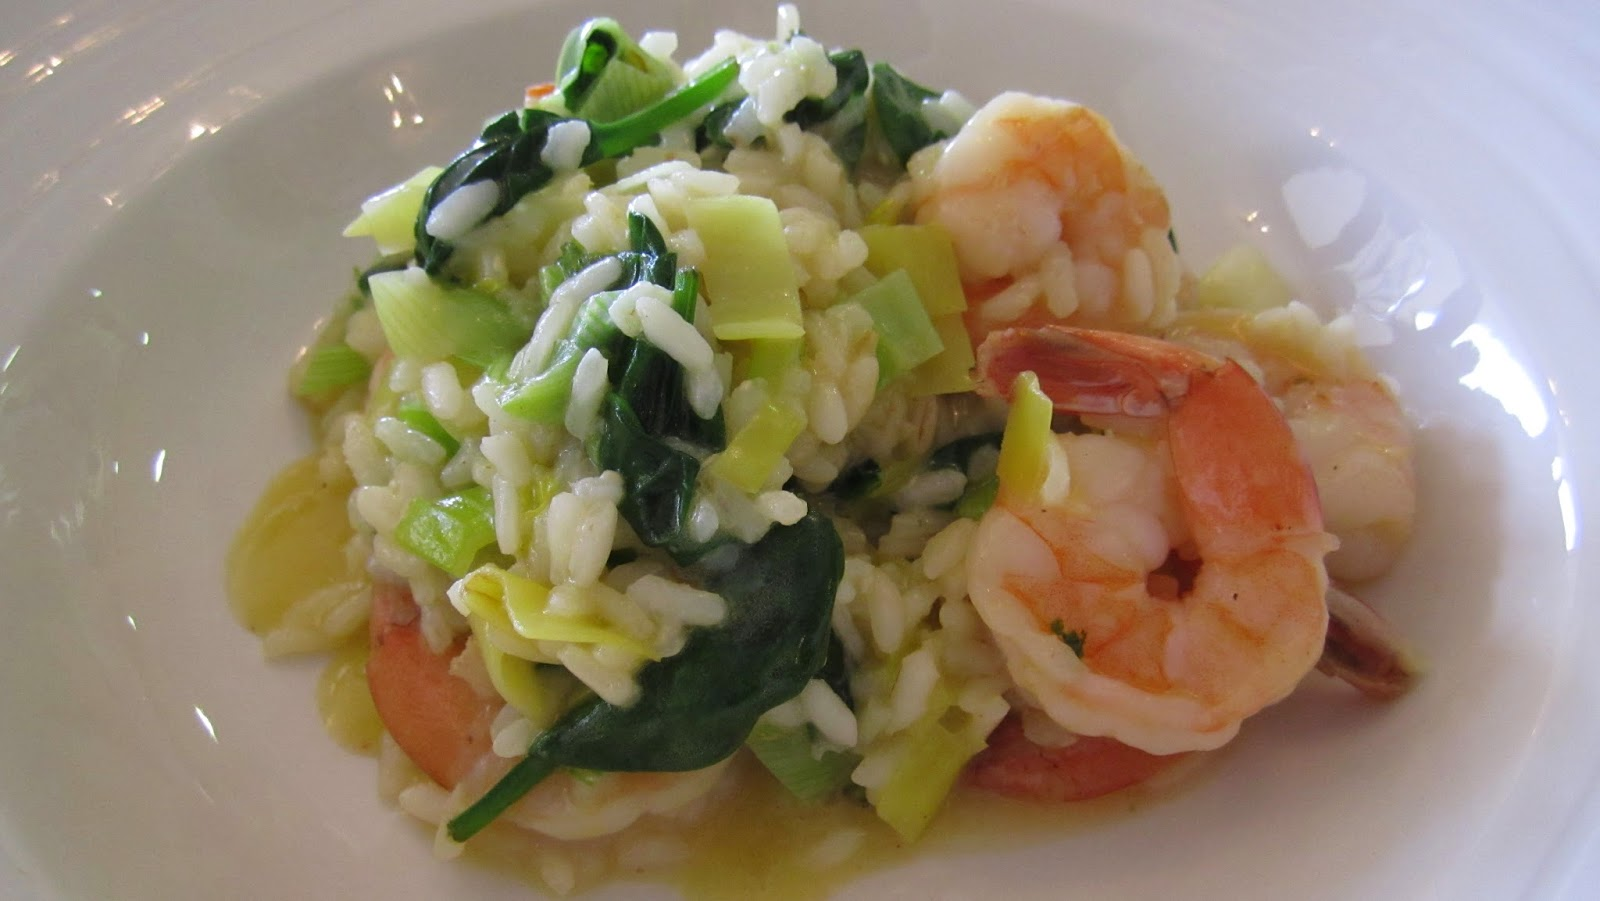 country kitchen Wolgan Valley nsw australia prawn and leek risotto